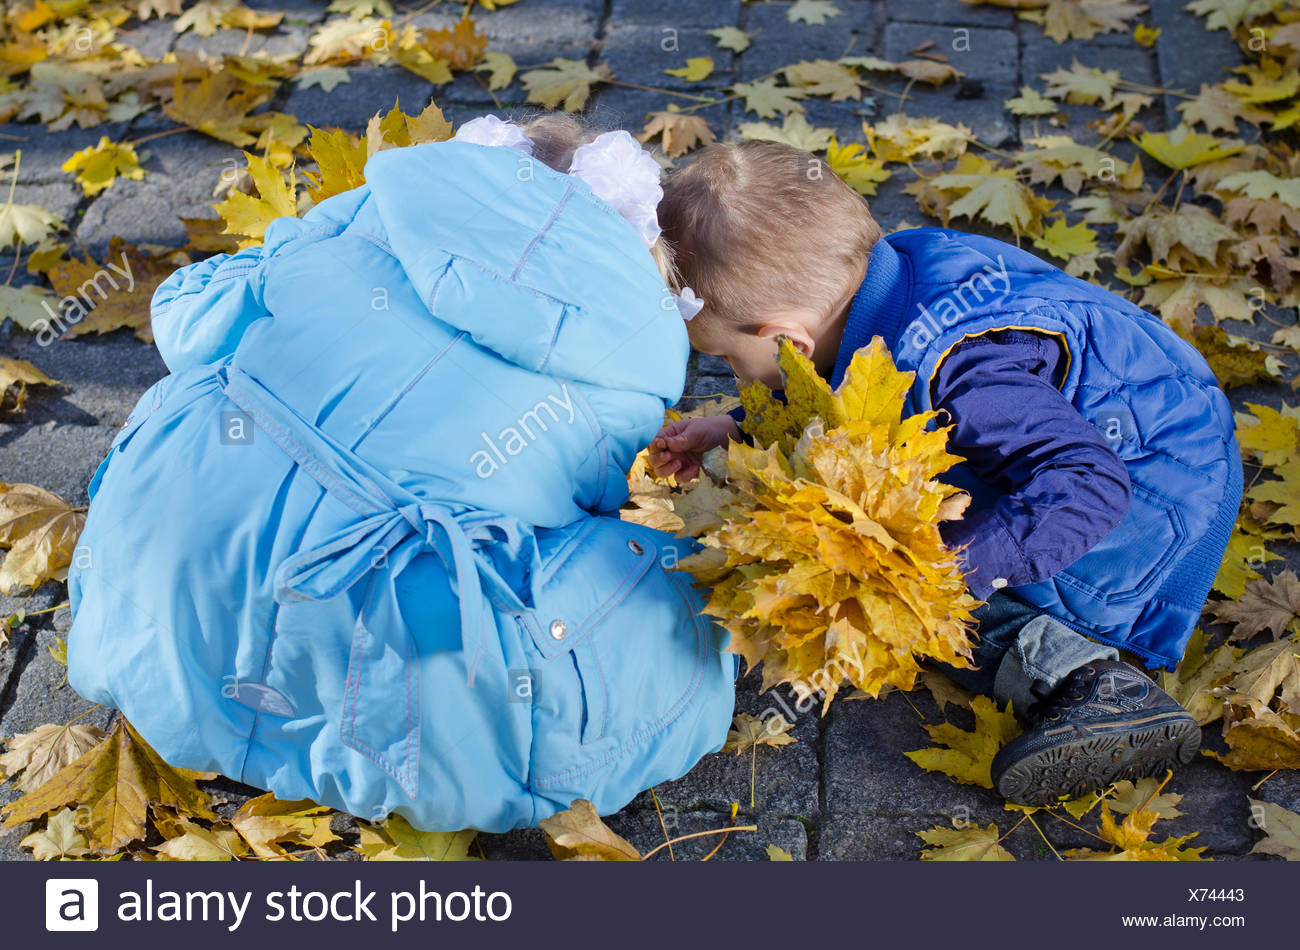 Young Children Gathering Autumn Leaves - Stock Image